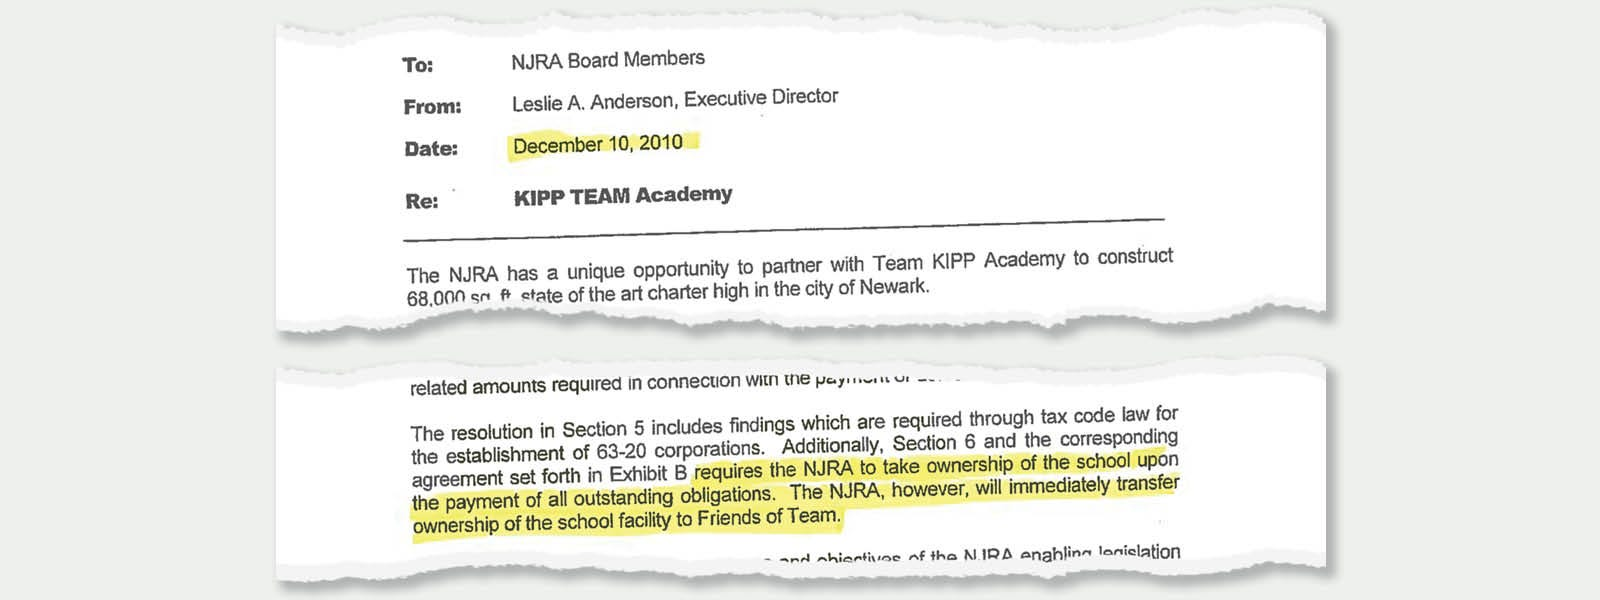 Excerpts from a memo sent by New Jersey Redevelopment Authority head Leslie Anderson telling the agency's board about plans to take ownership of a building to meet a tax rule and then immediately transferring it to the private Friends of TEAM.